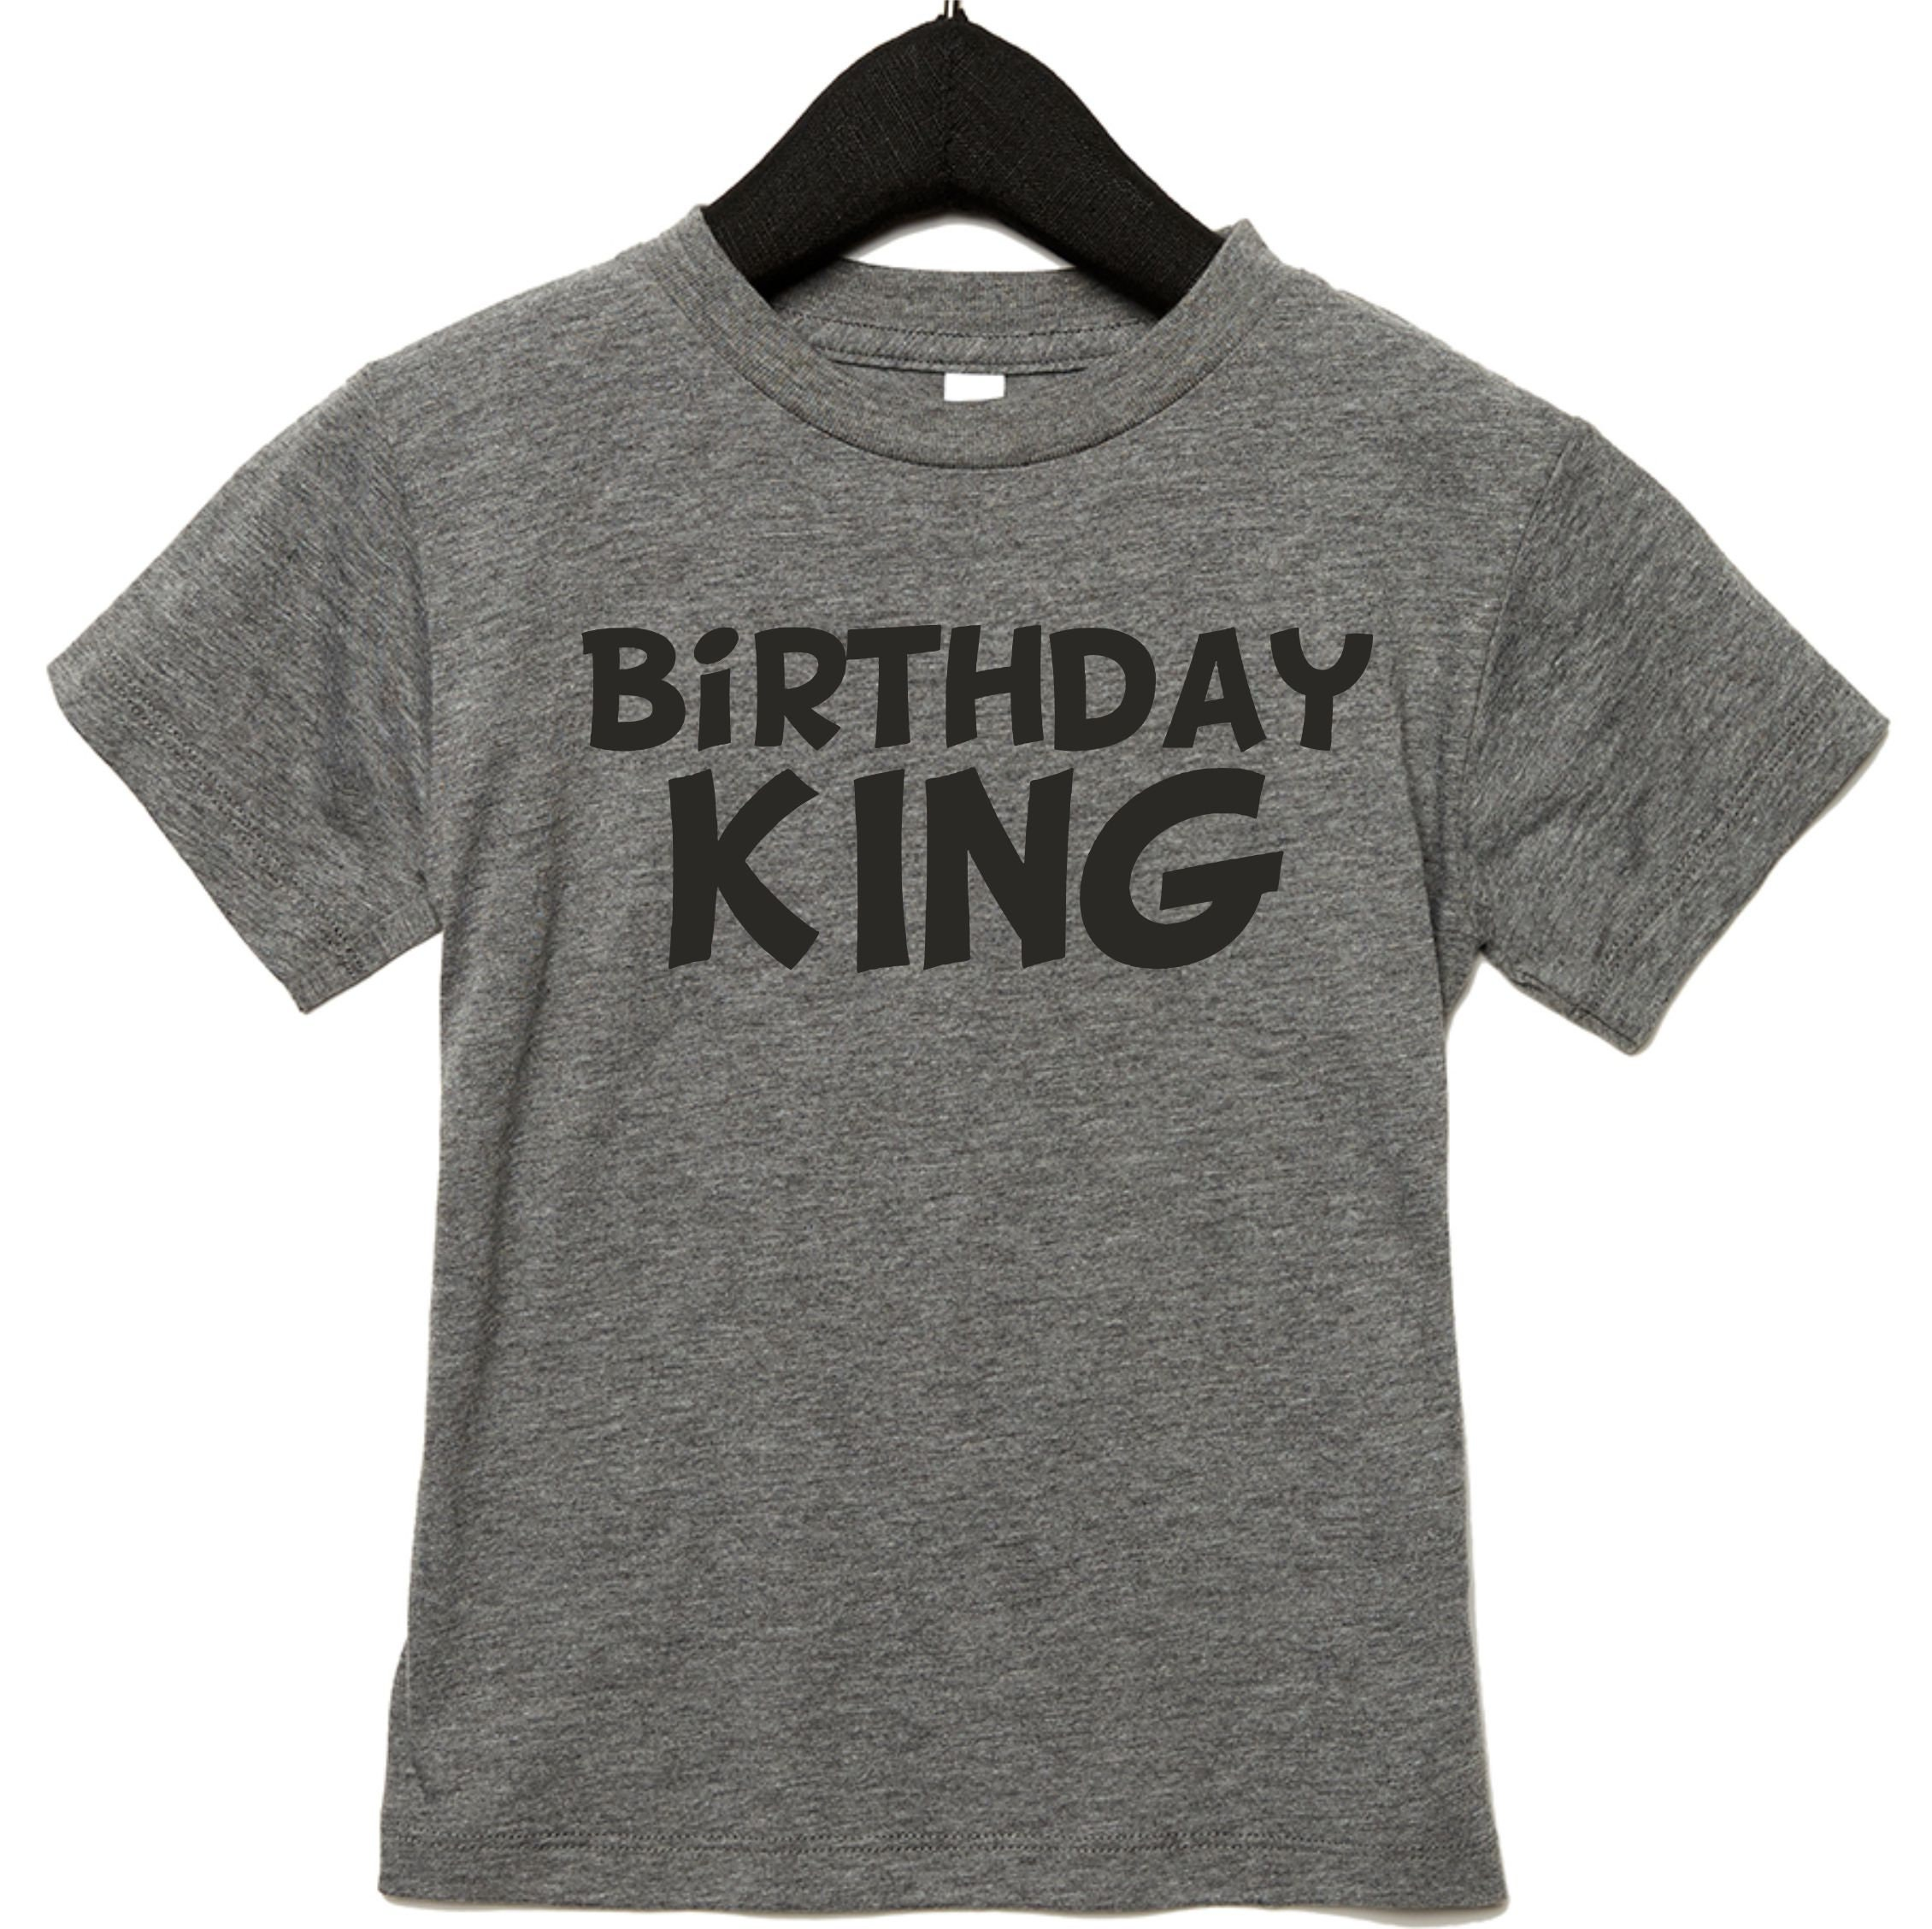 Kids Birthday King Shirt Boys Tshirt Boy Tee Toddler Size 3t 4t 5 6 7 8 Shirts For